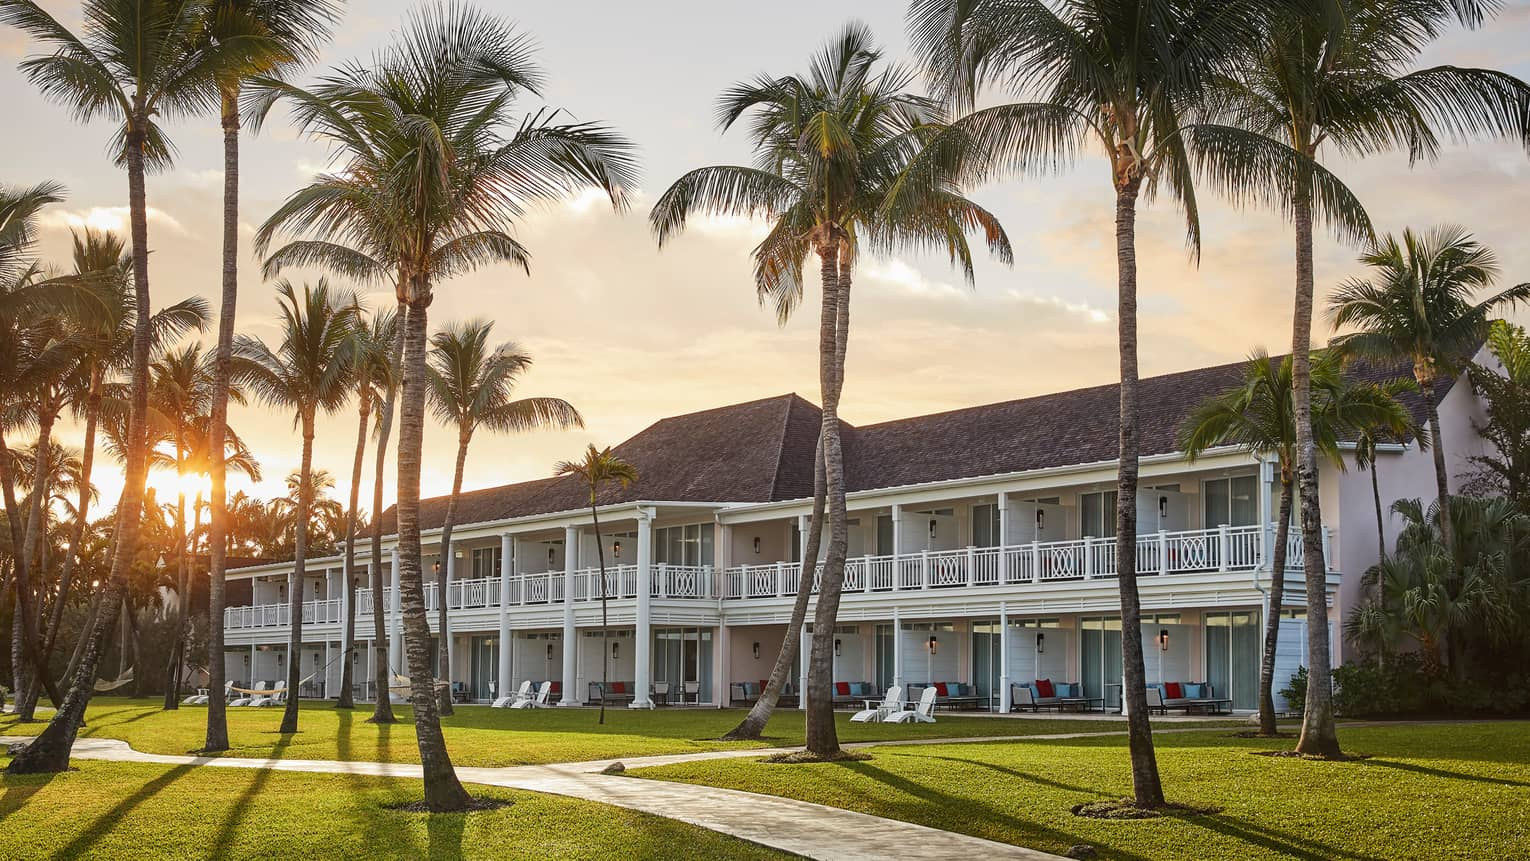 Four Seasons Ocean Club confirms support for staff in payroll transition